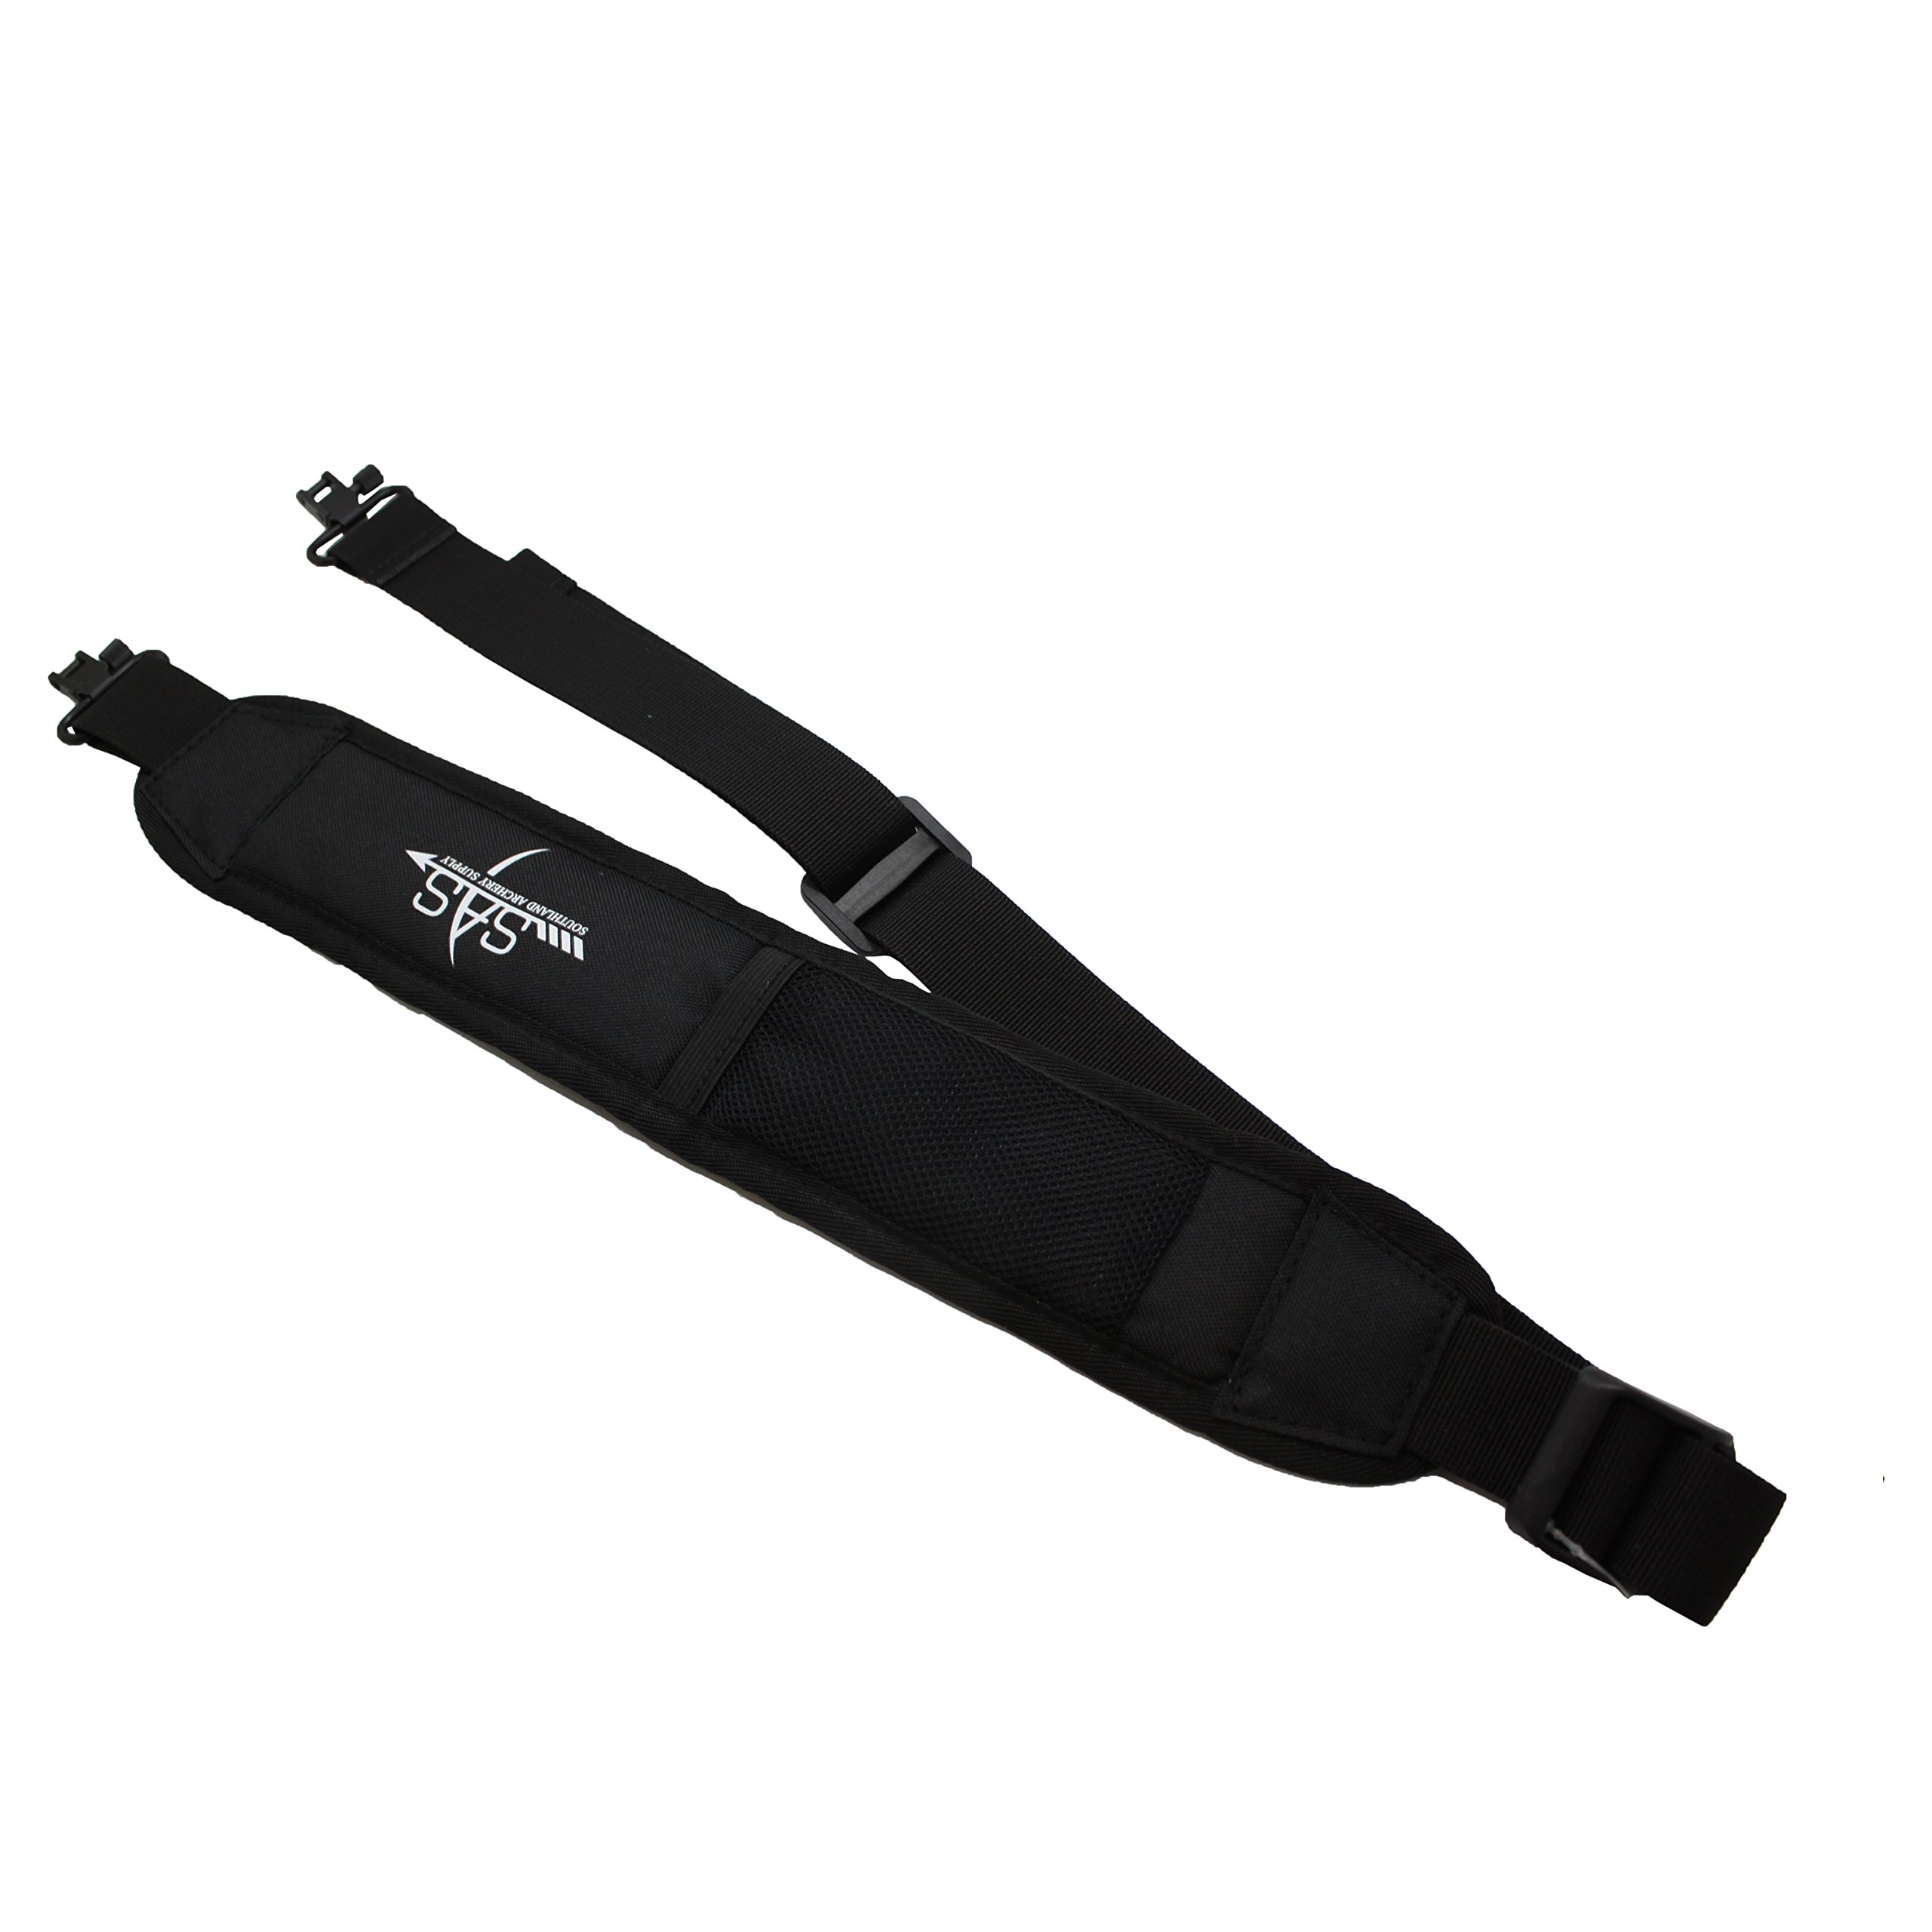 Southland Archery Supply SAS Universal Premium Padded Crossbow/Rifle Sling by Southland Archery Supply